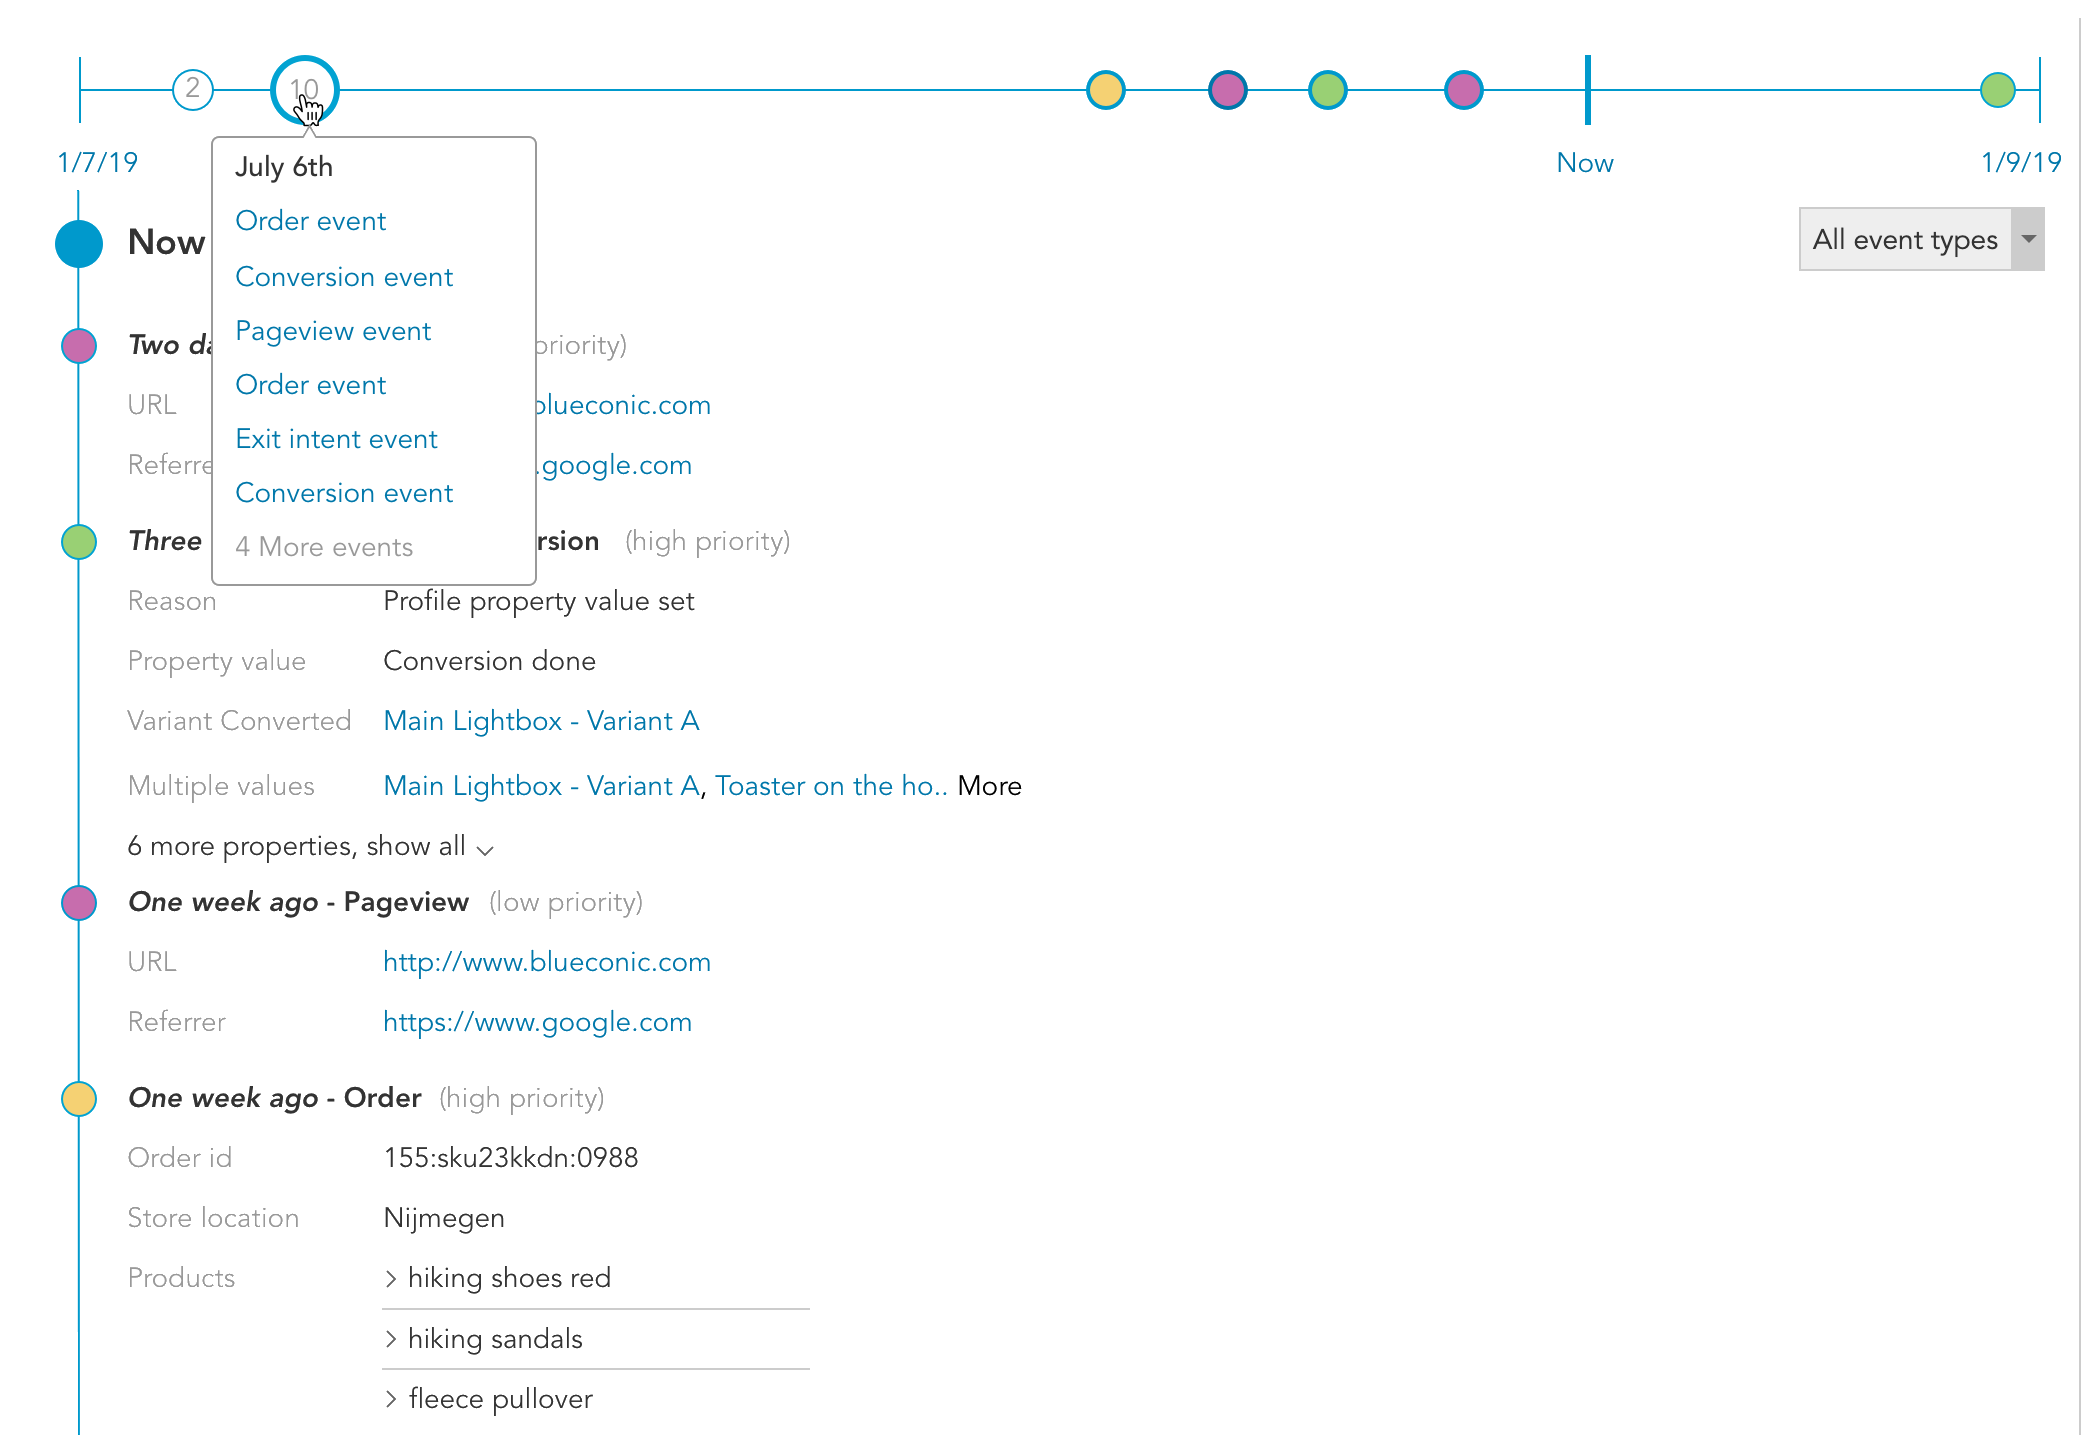 How do I visualize a BlueConic Timeline of events such as customer orders or customer conversion events?